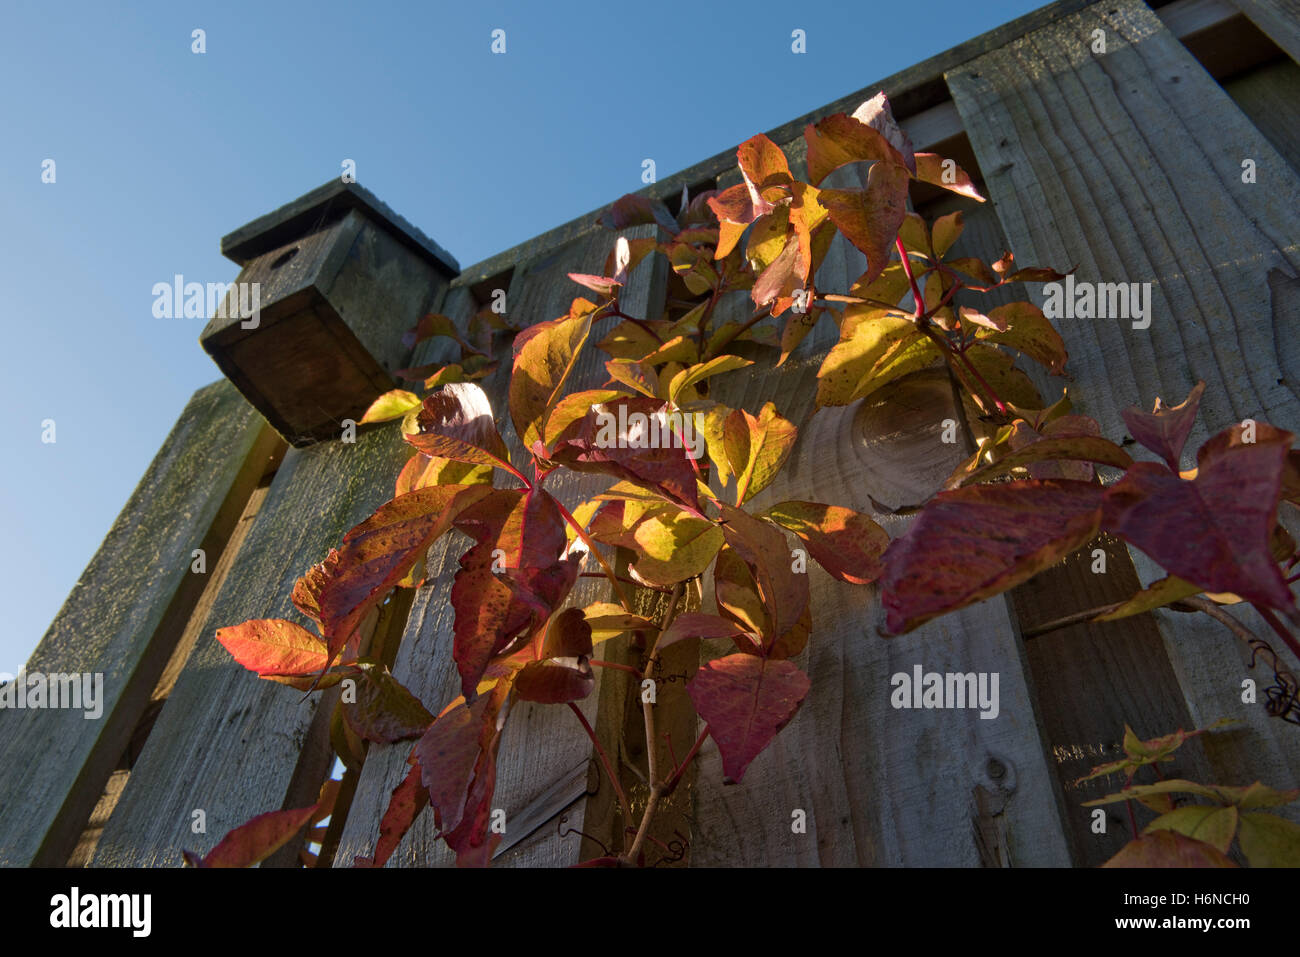 Virginia creeper, Parthenocissus tricuspidata, red leaves growing on a fence with a bird nestbox, October - Stock Image